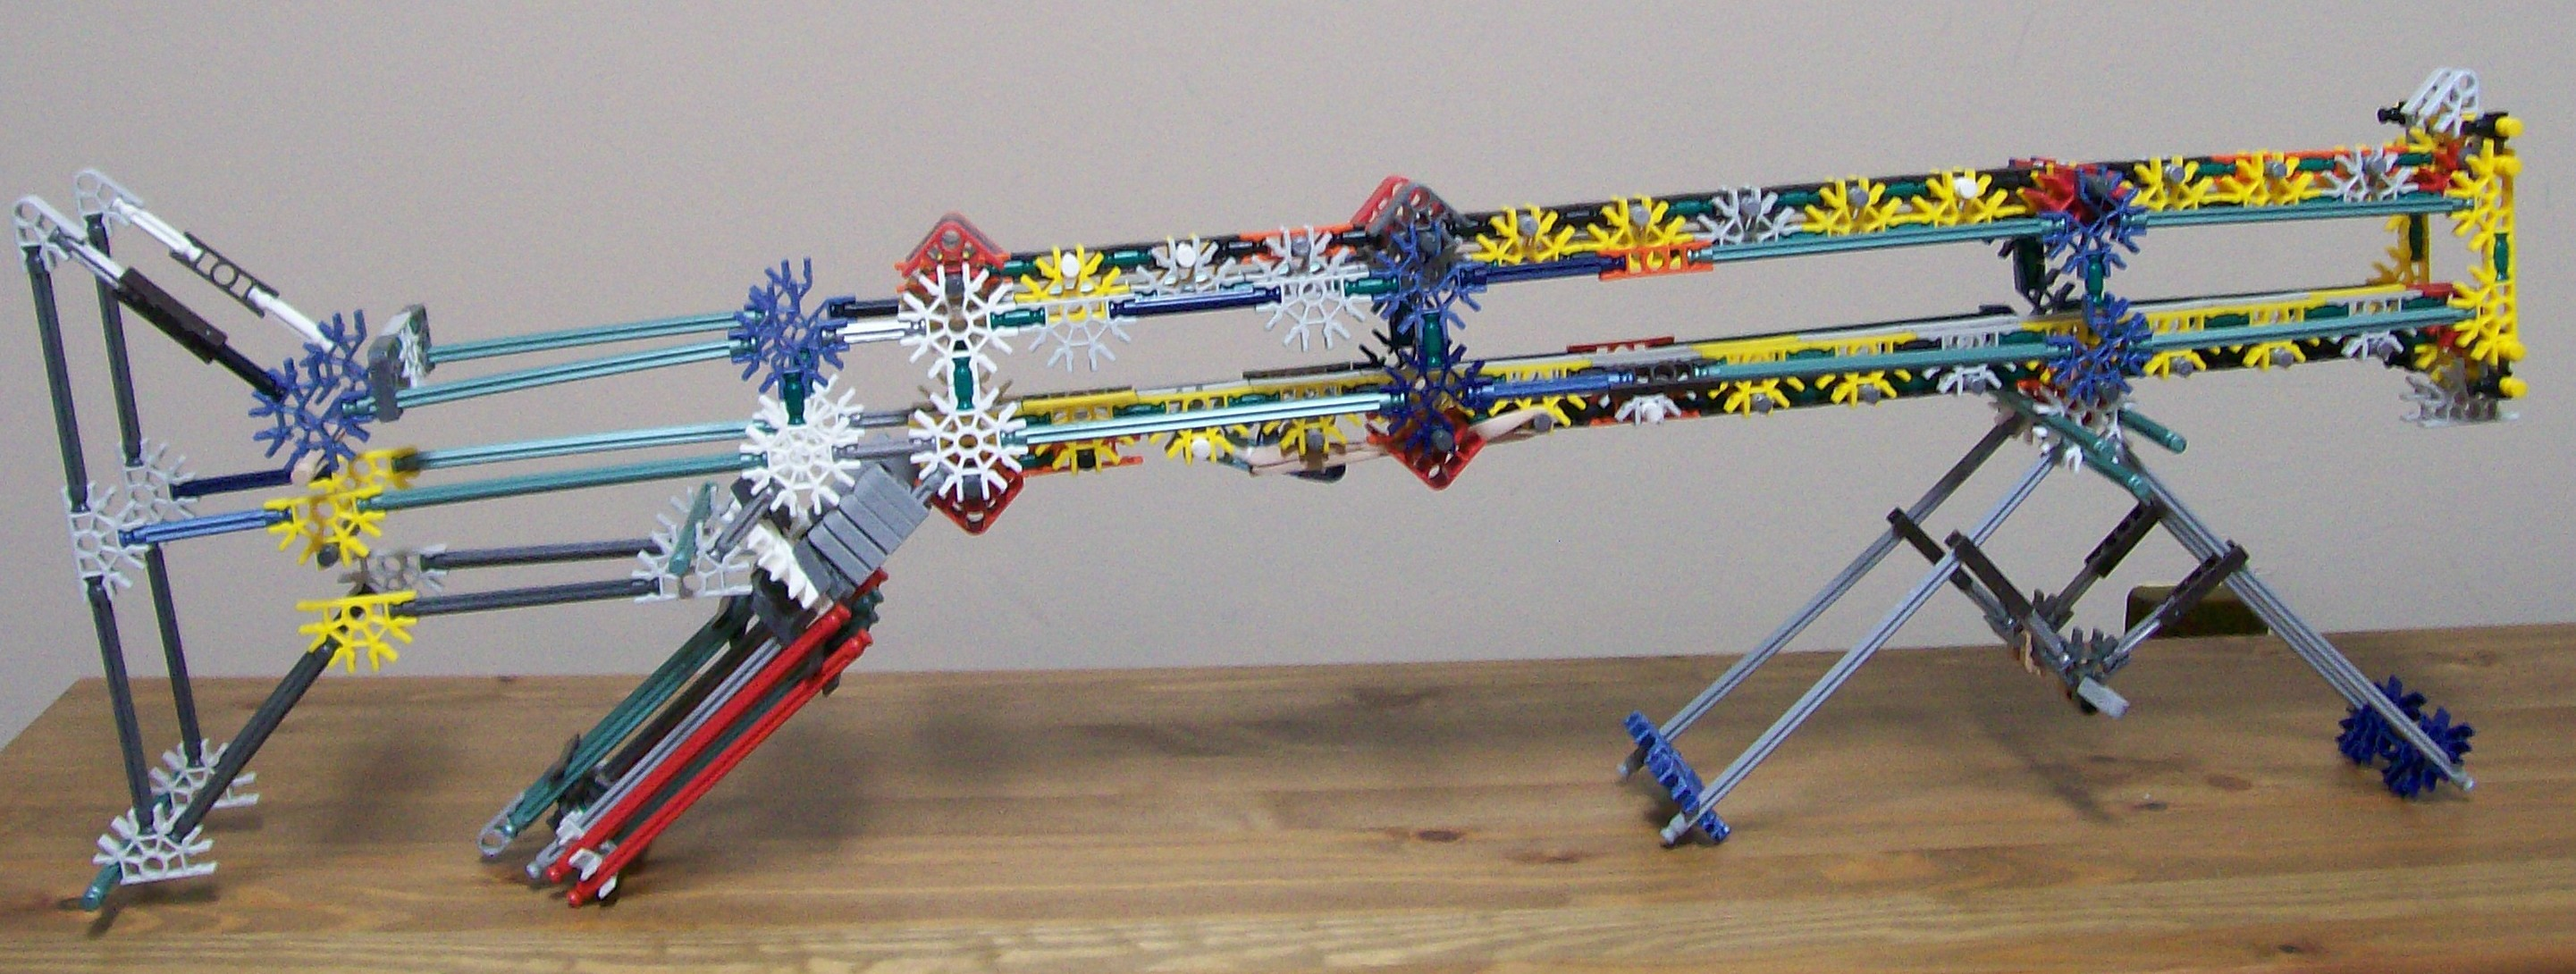 Picture of who do you think builds the best knex guns?